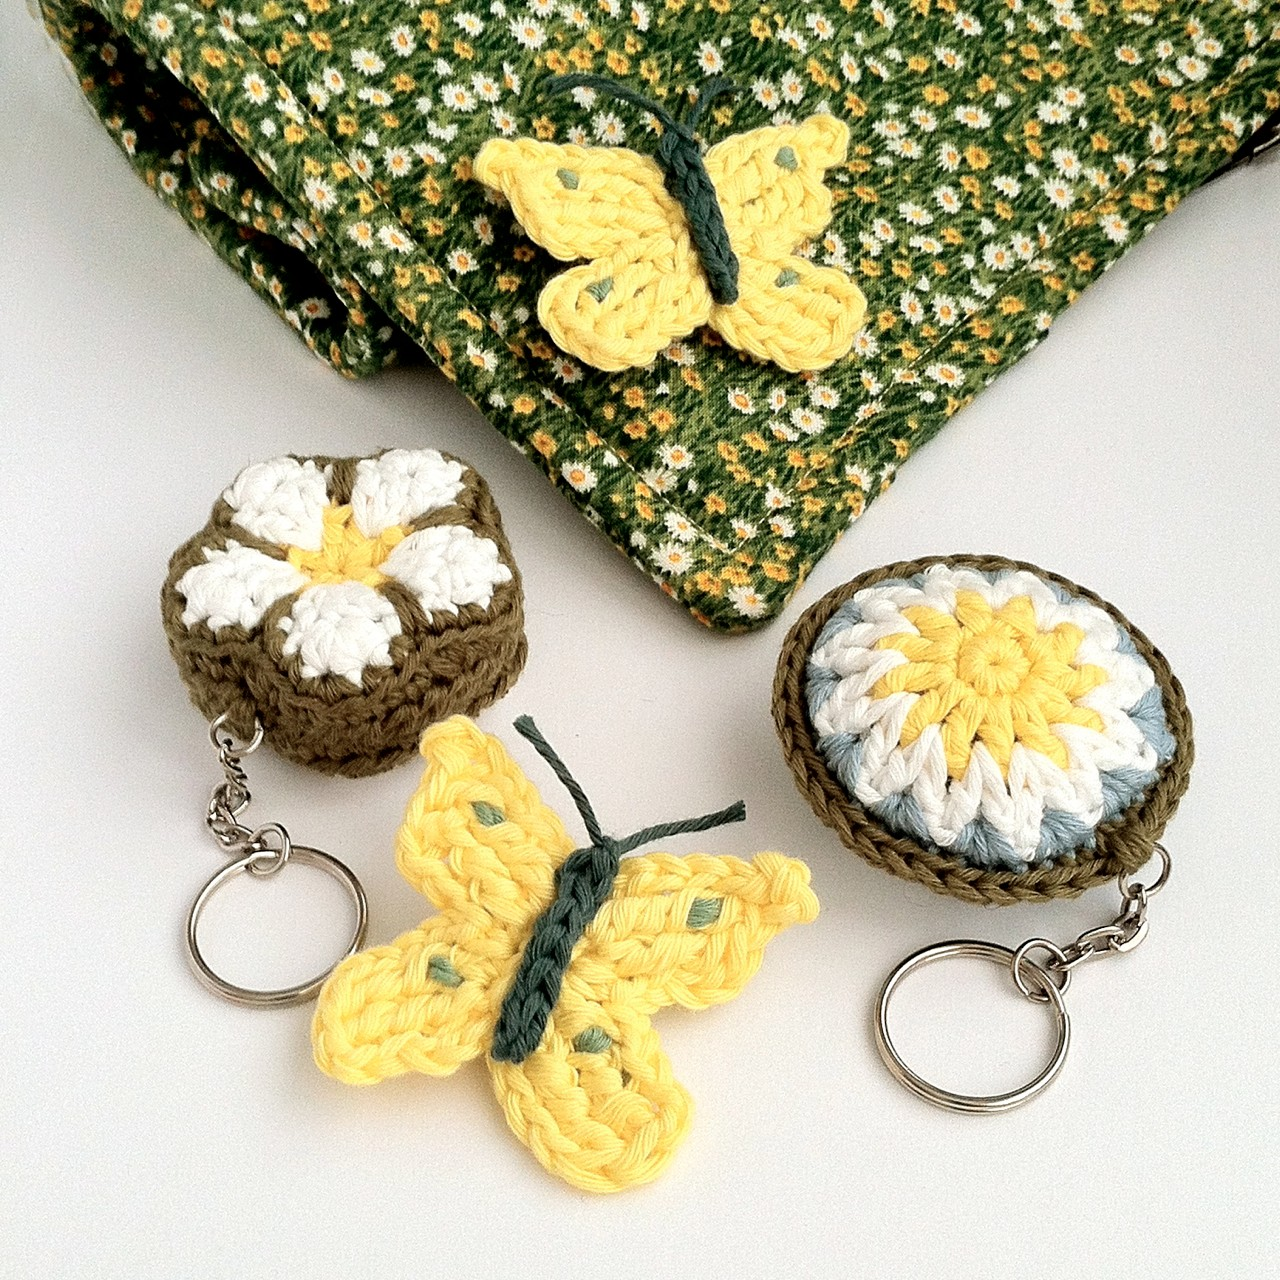 Eco-friendnly small gifts